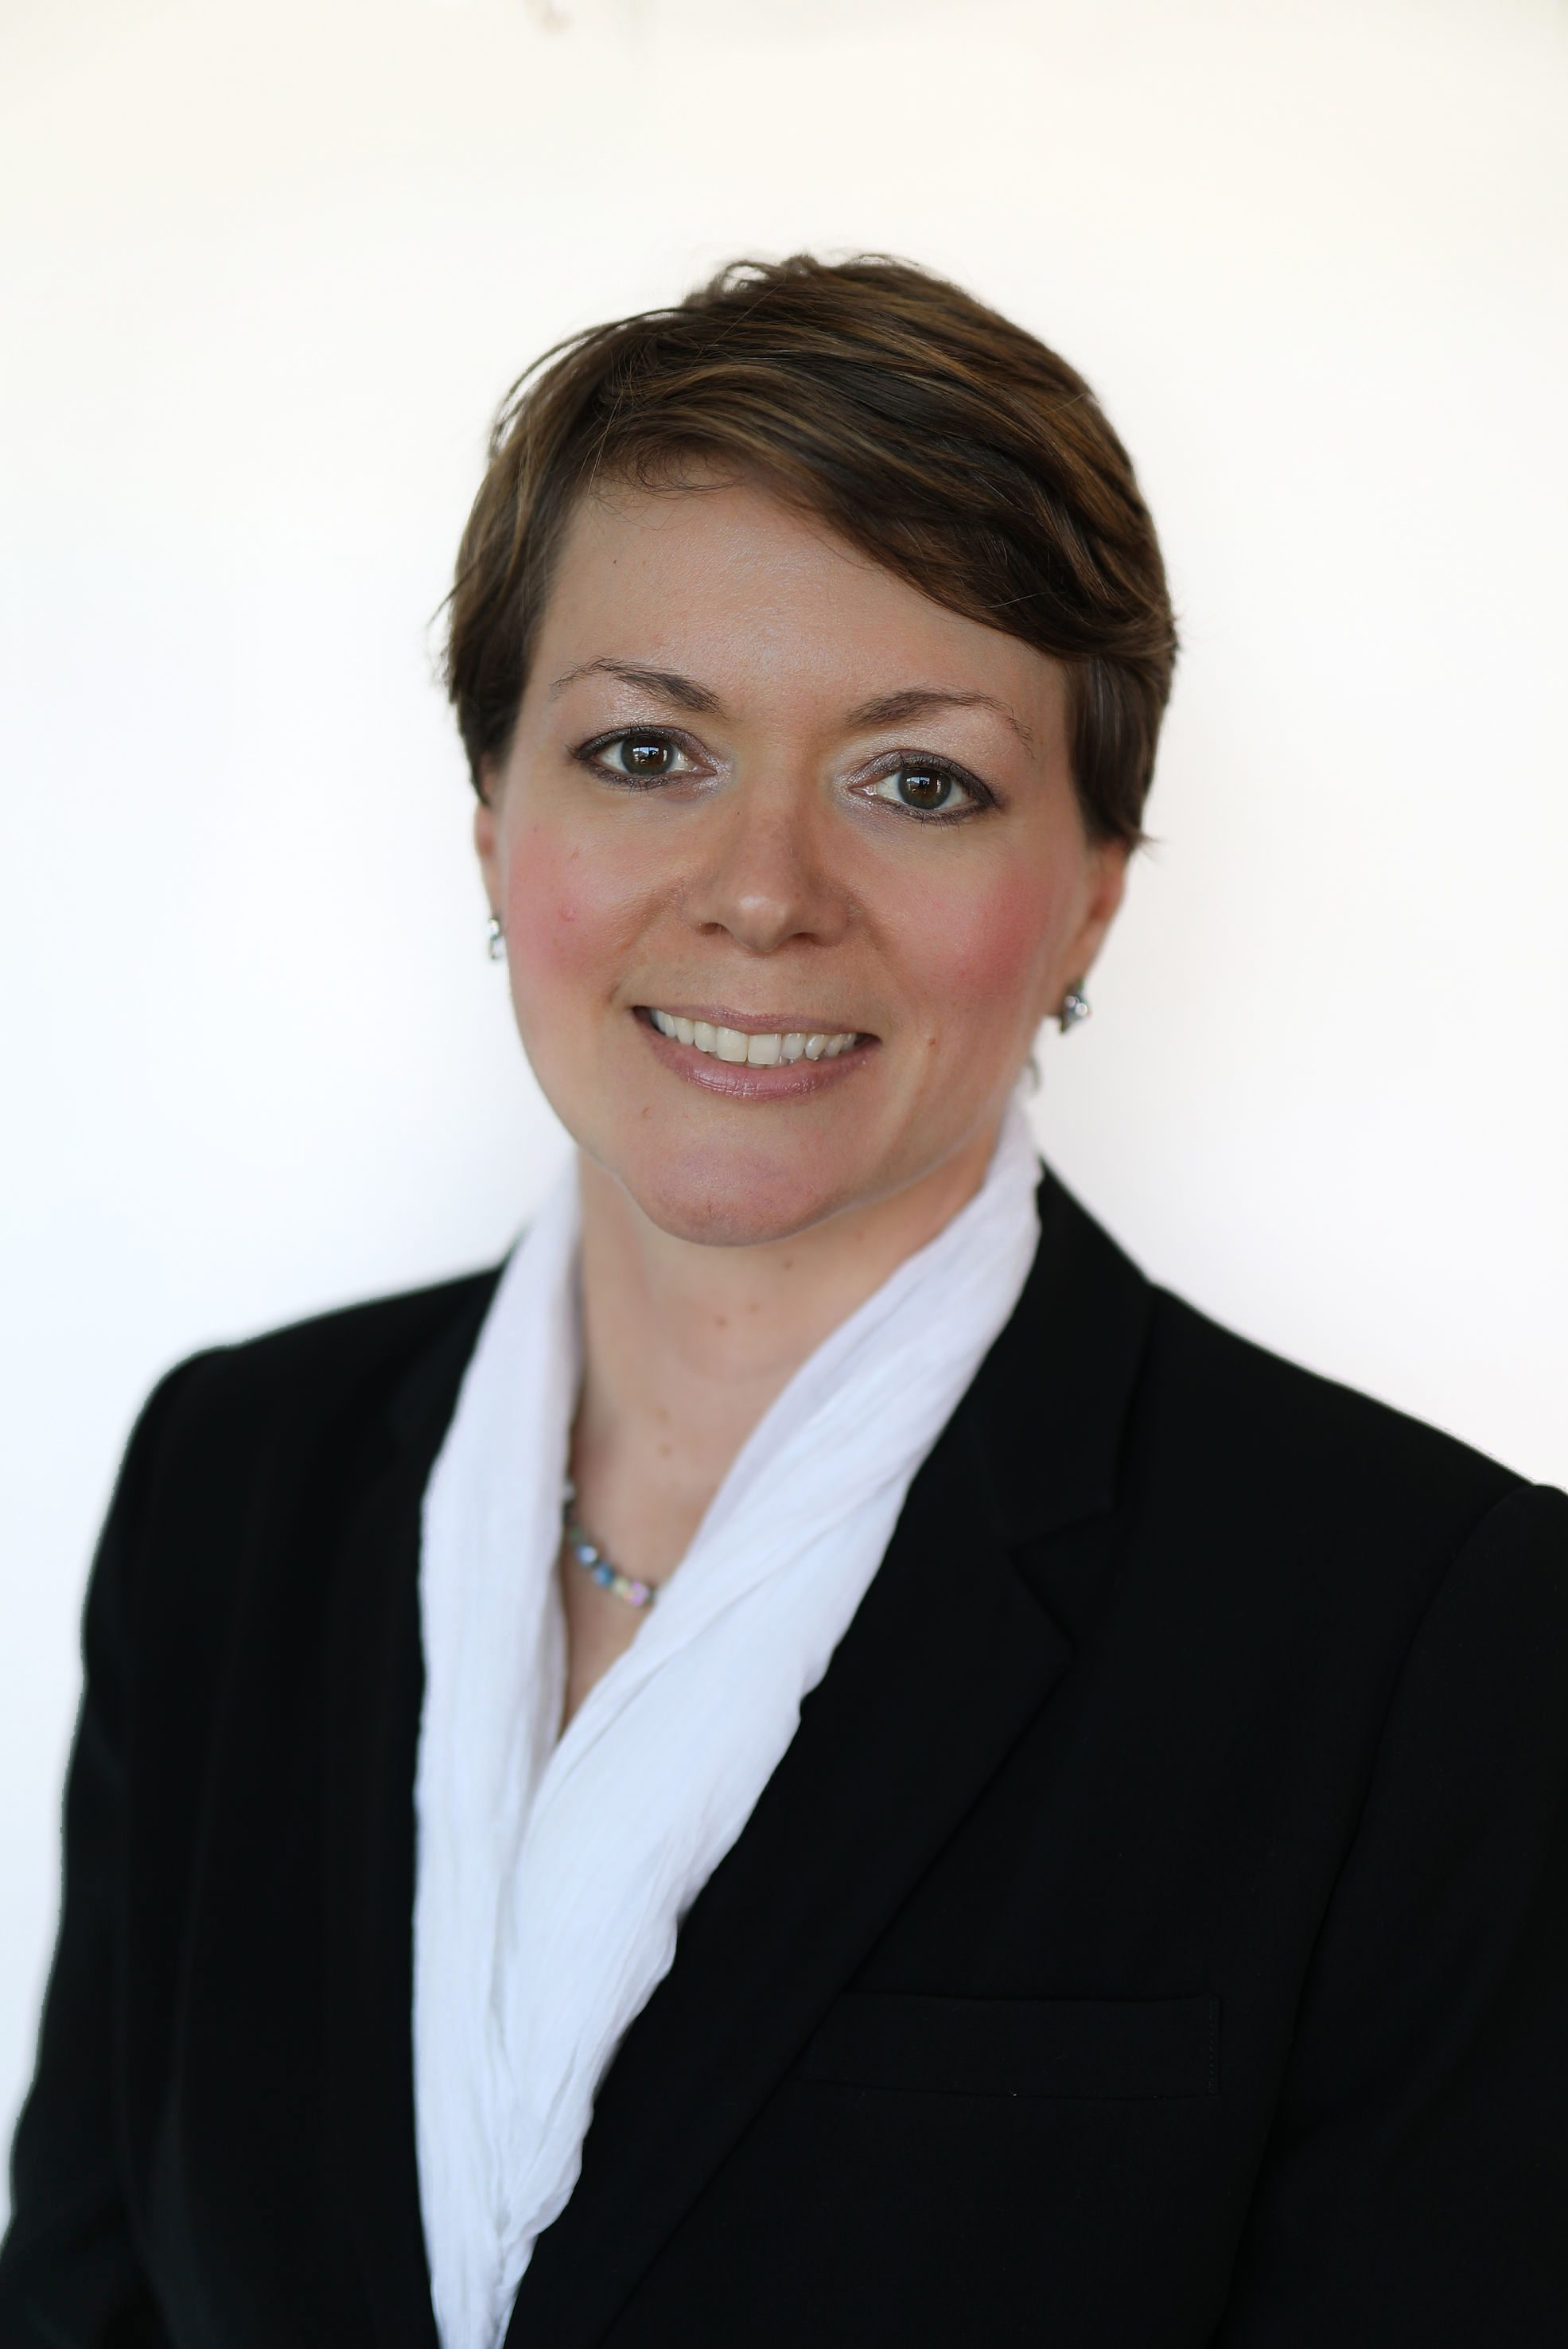 Kristina Bennett headshot, Kristina Bennett, Kristina Bennett Pioneer Valley Financial Group, PV Financial Group Kristina Bennett, financial advisor Western MA